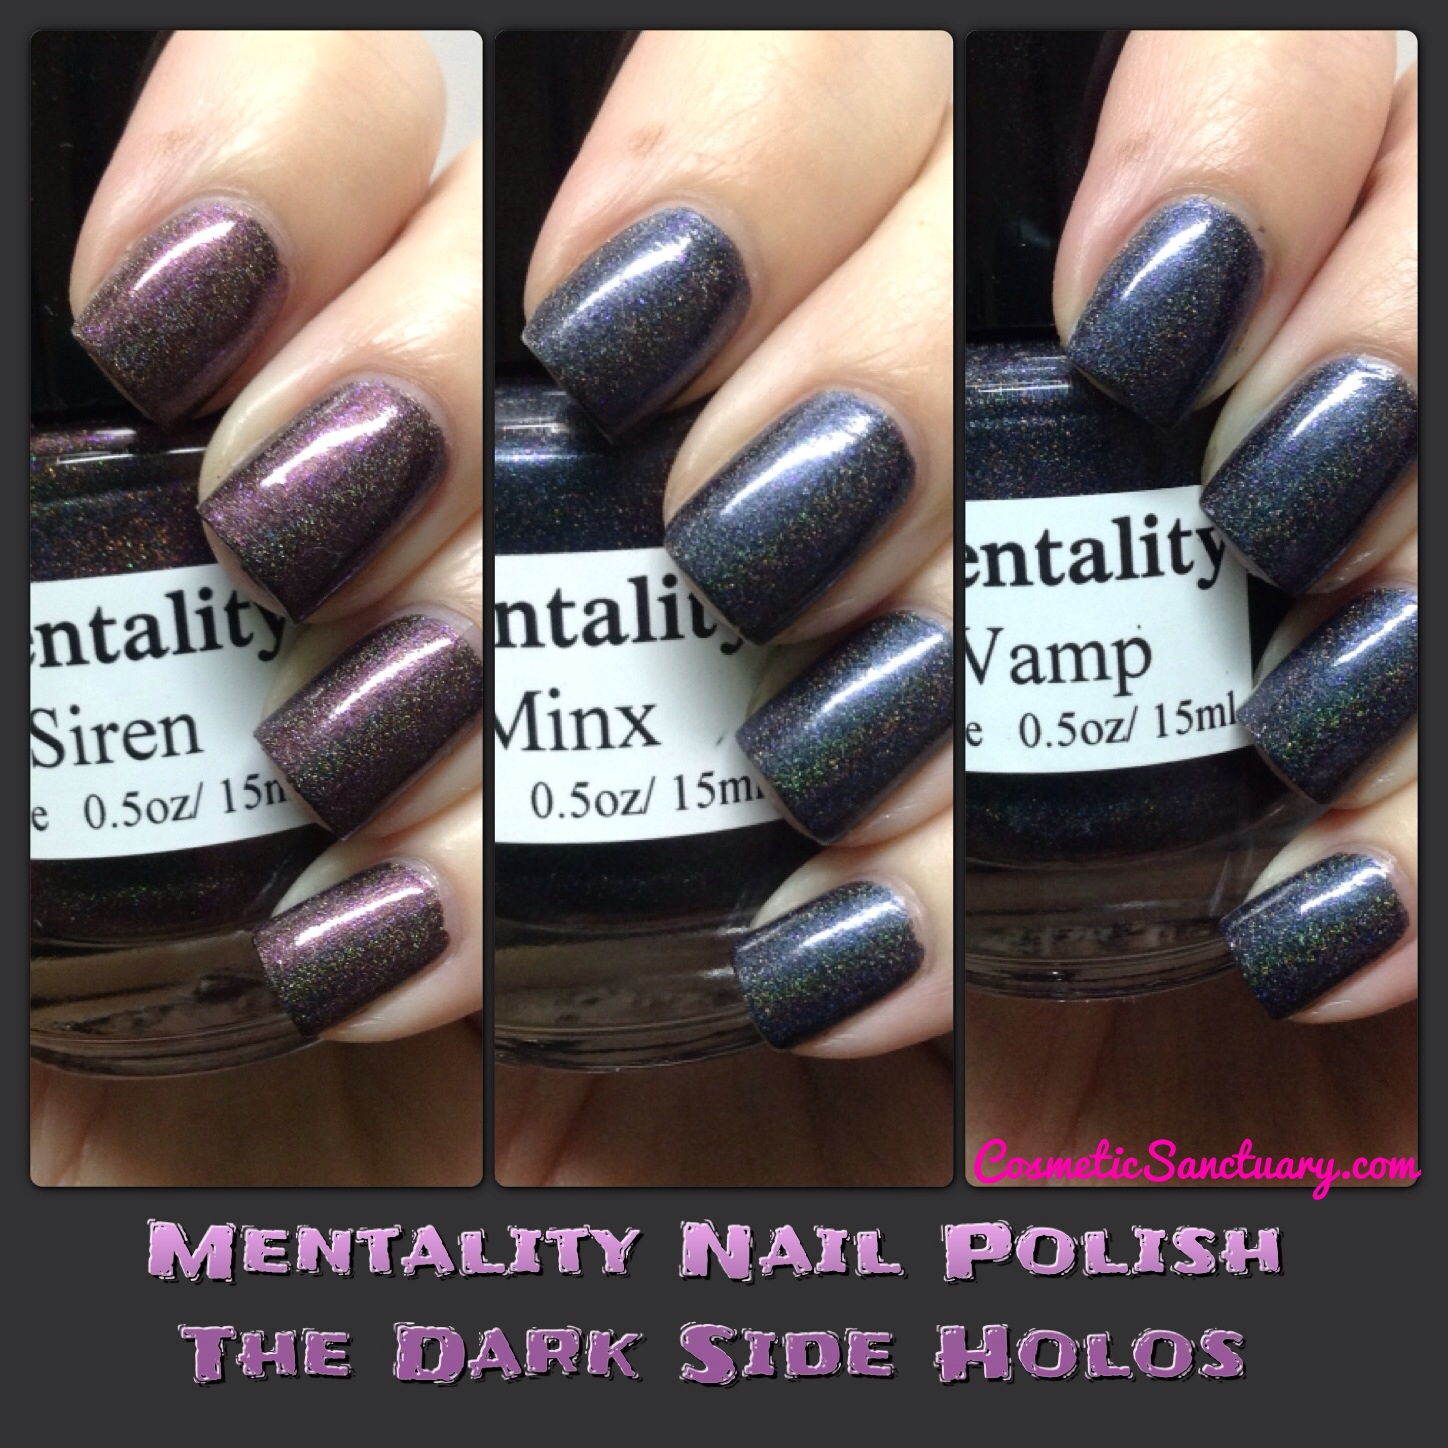 Mentality Nail Polish The Dark Side Holos Collection Swatches and Review